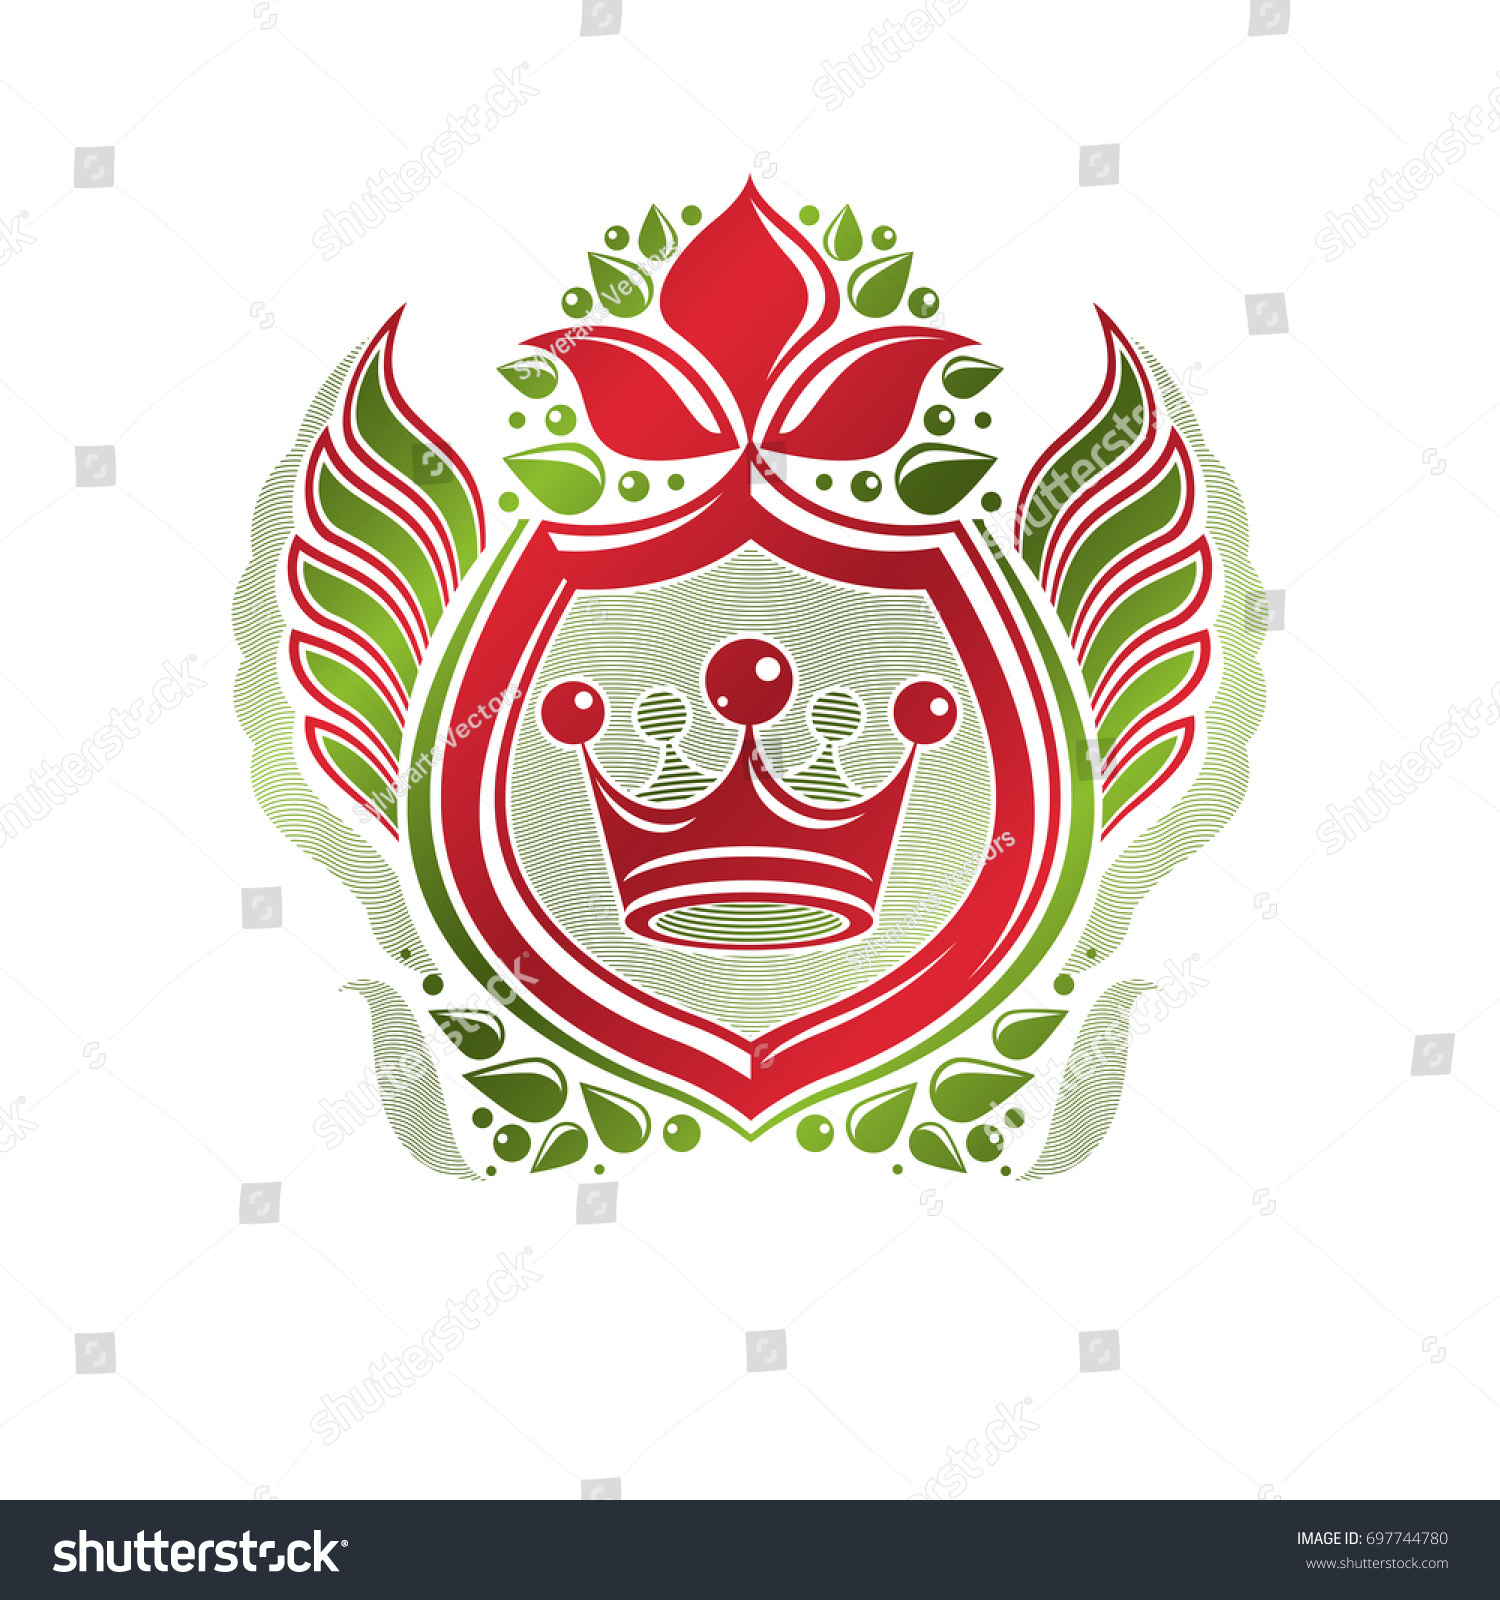 Vintage heraldic insignia made with monarch crown and lily flower vintage heraldic insignia made with monarch crown and lily flower royal symbol eco friendly product symbol king quality theme illustration izmirmasajfo